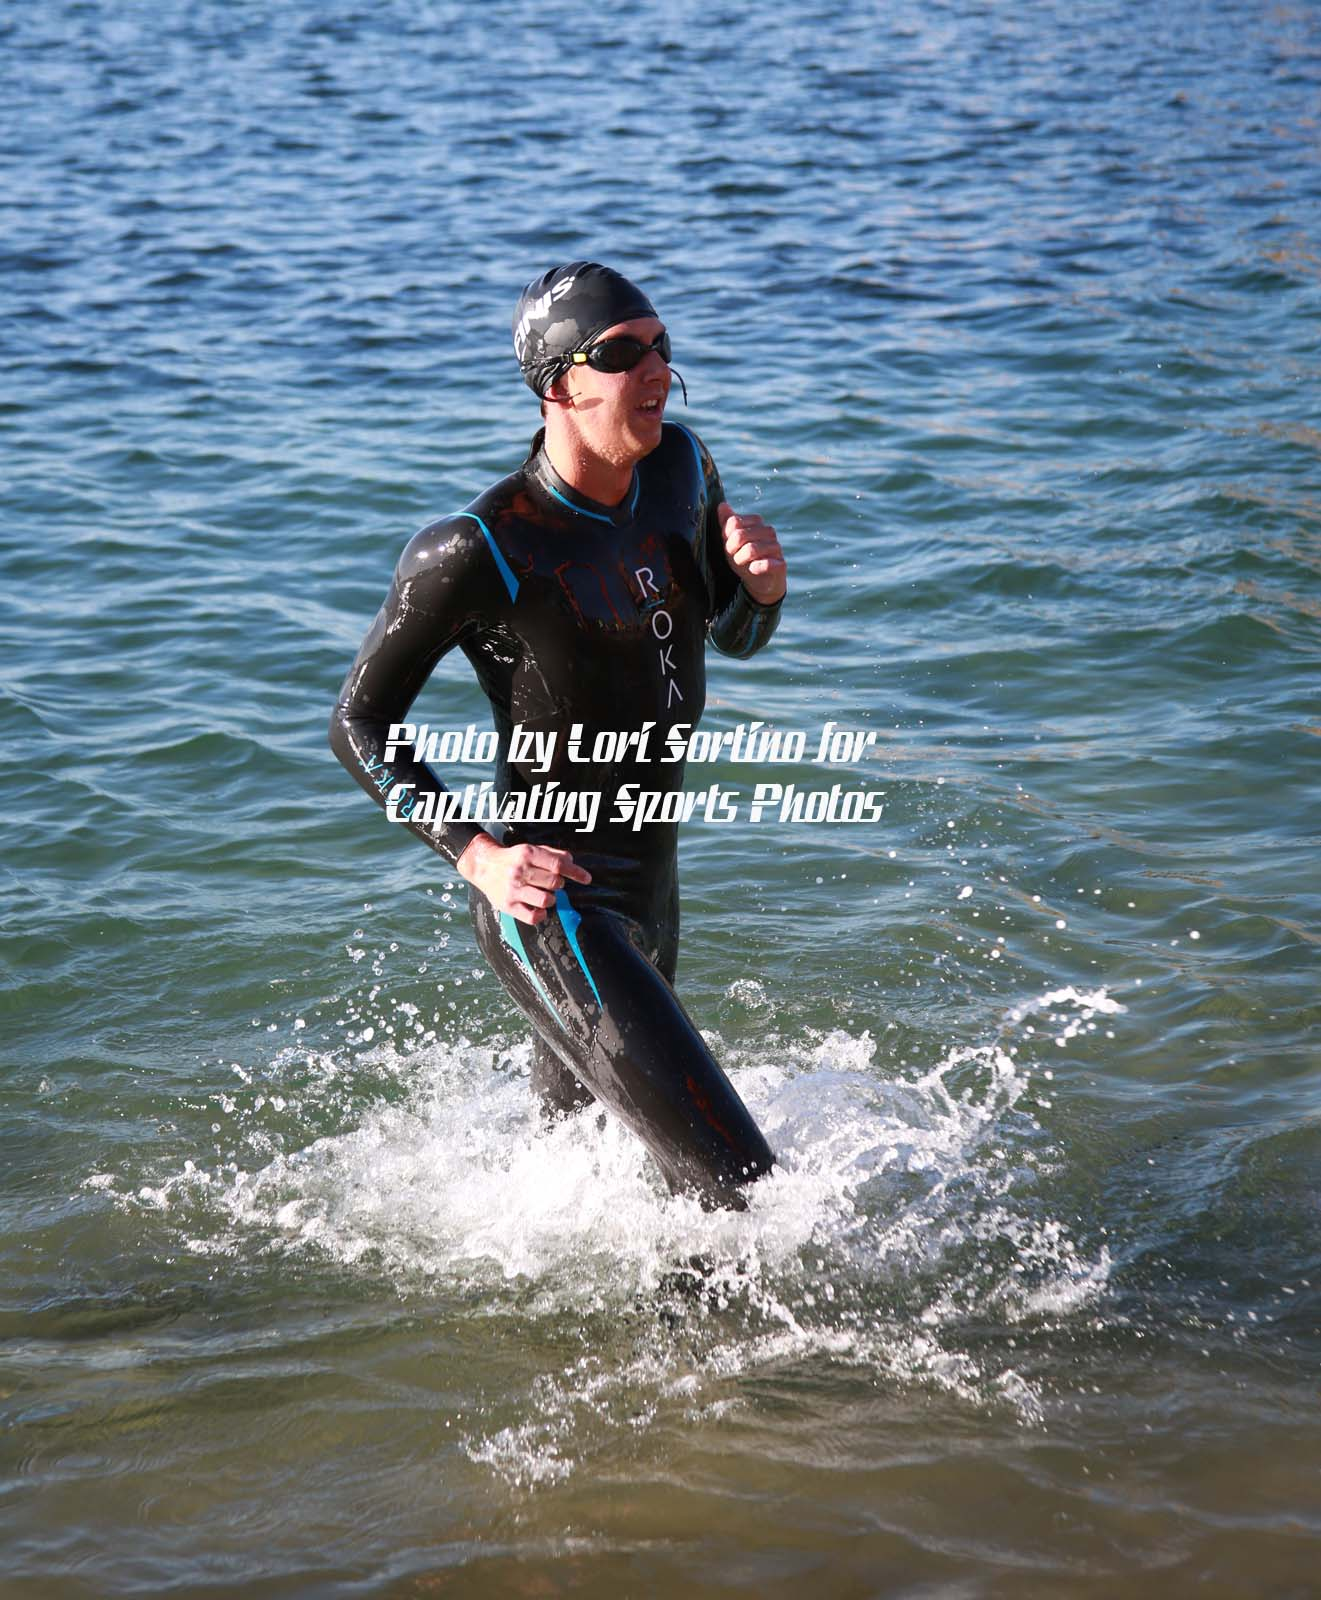 triathlete exiting water with splash